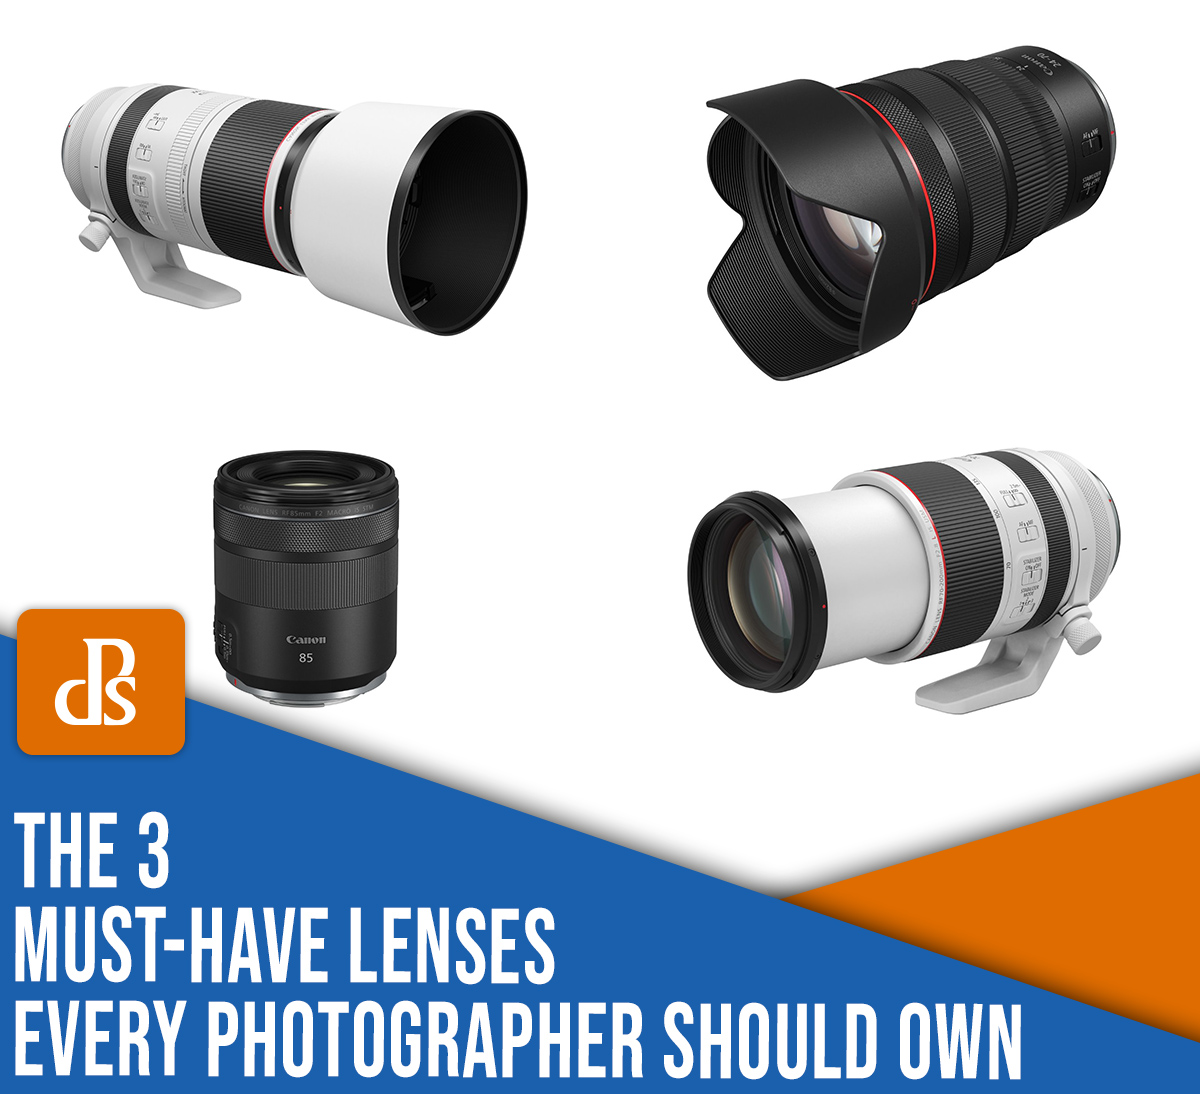 The 3 Must-Have Camera Lenses Every Photographer Should Own